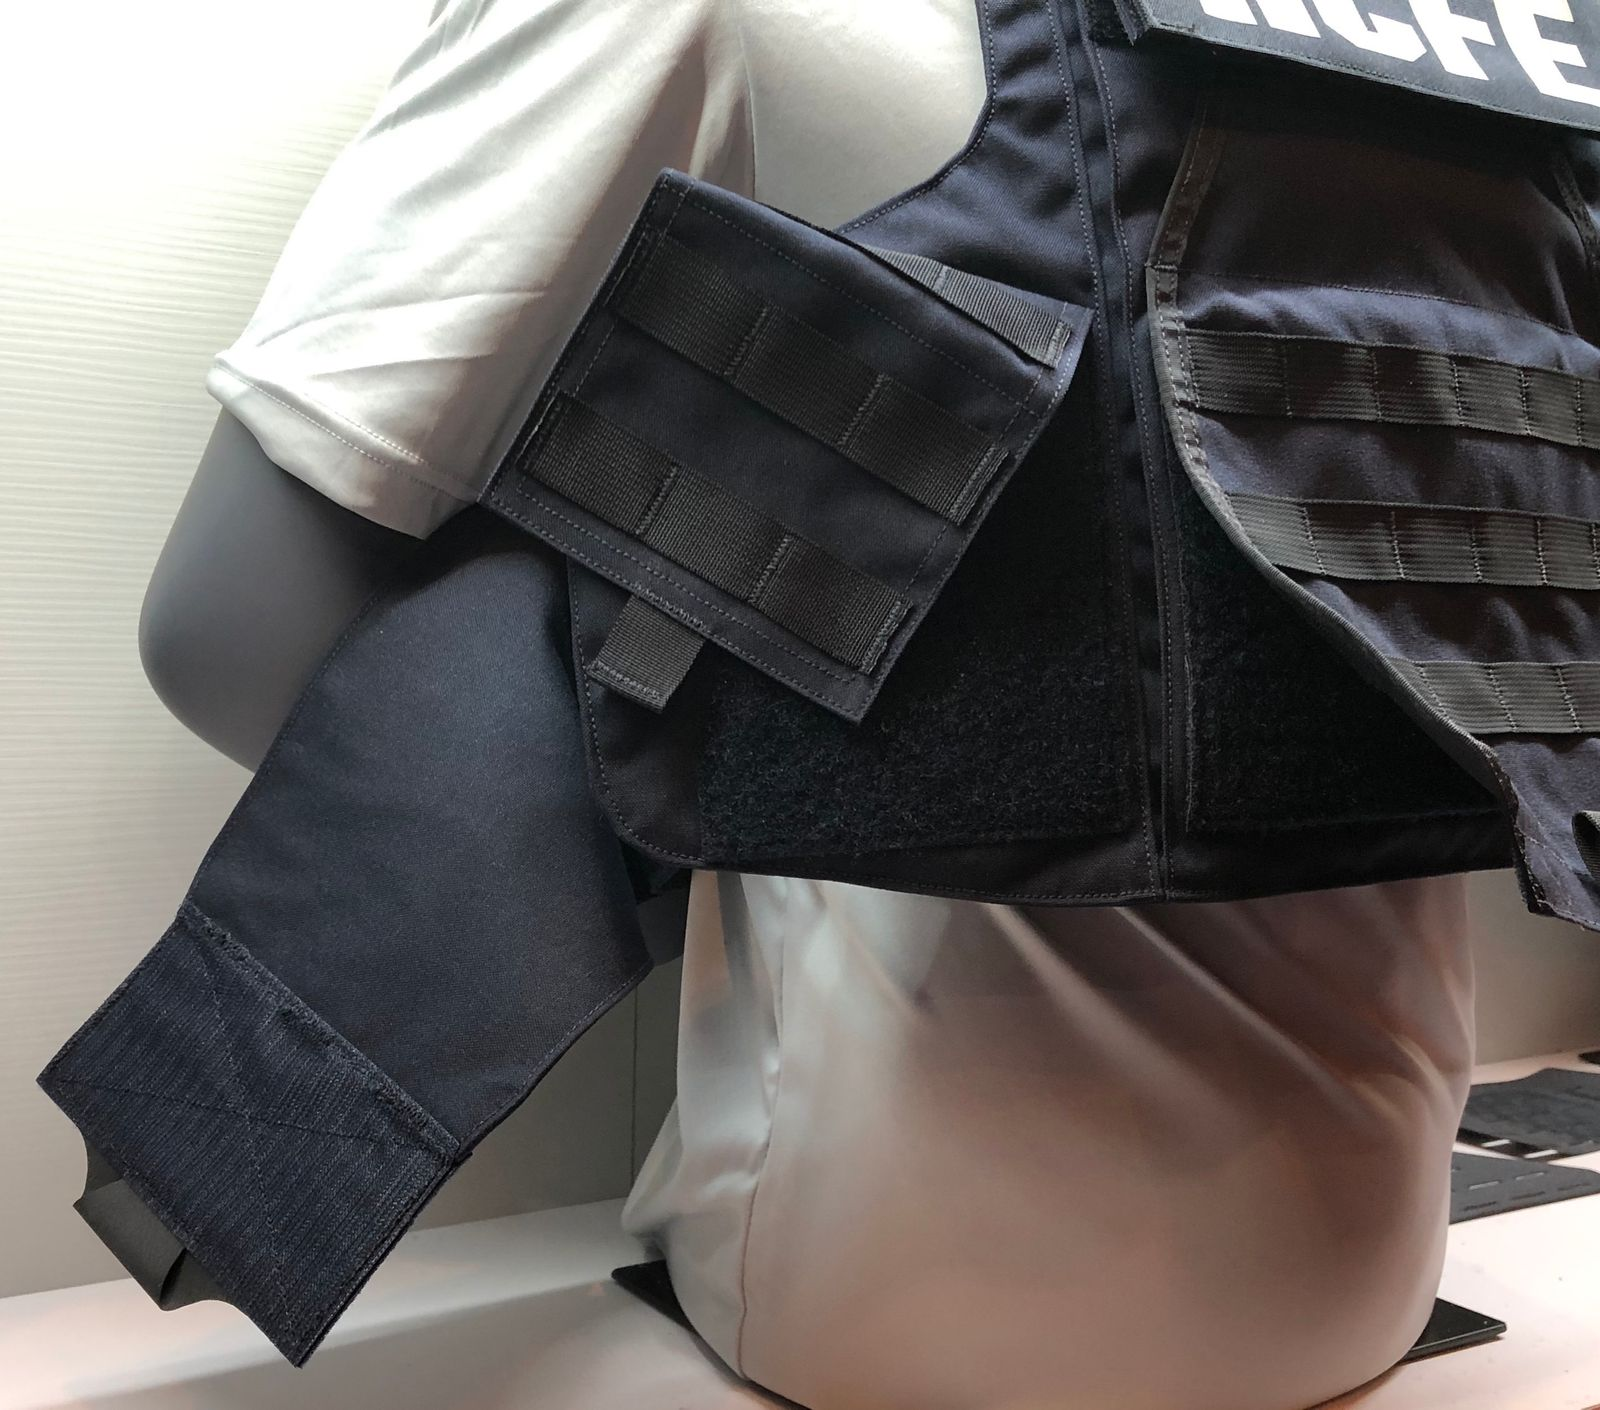 ac175be1958 Advances in police body armor technology at SHOT Show